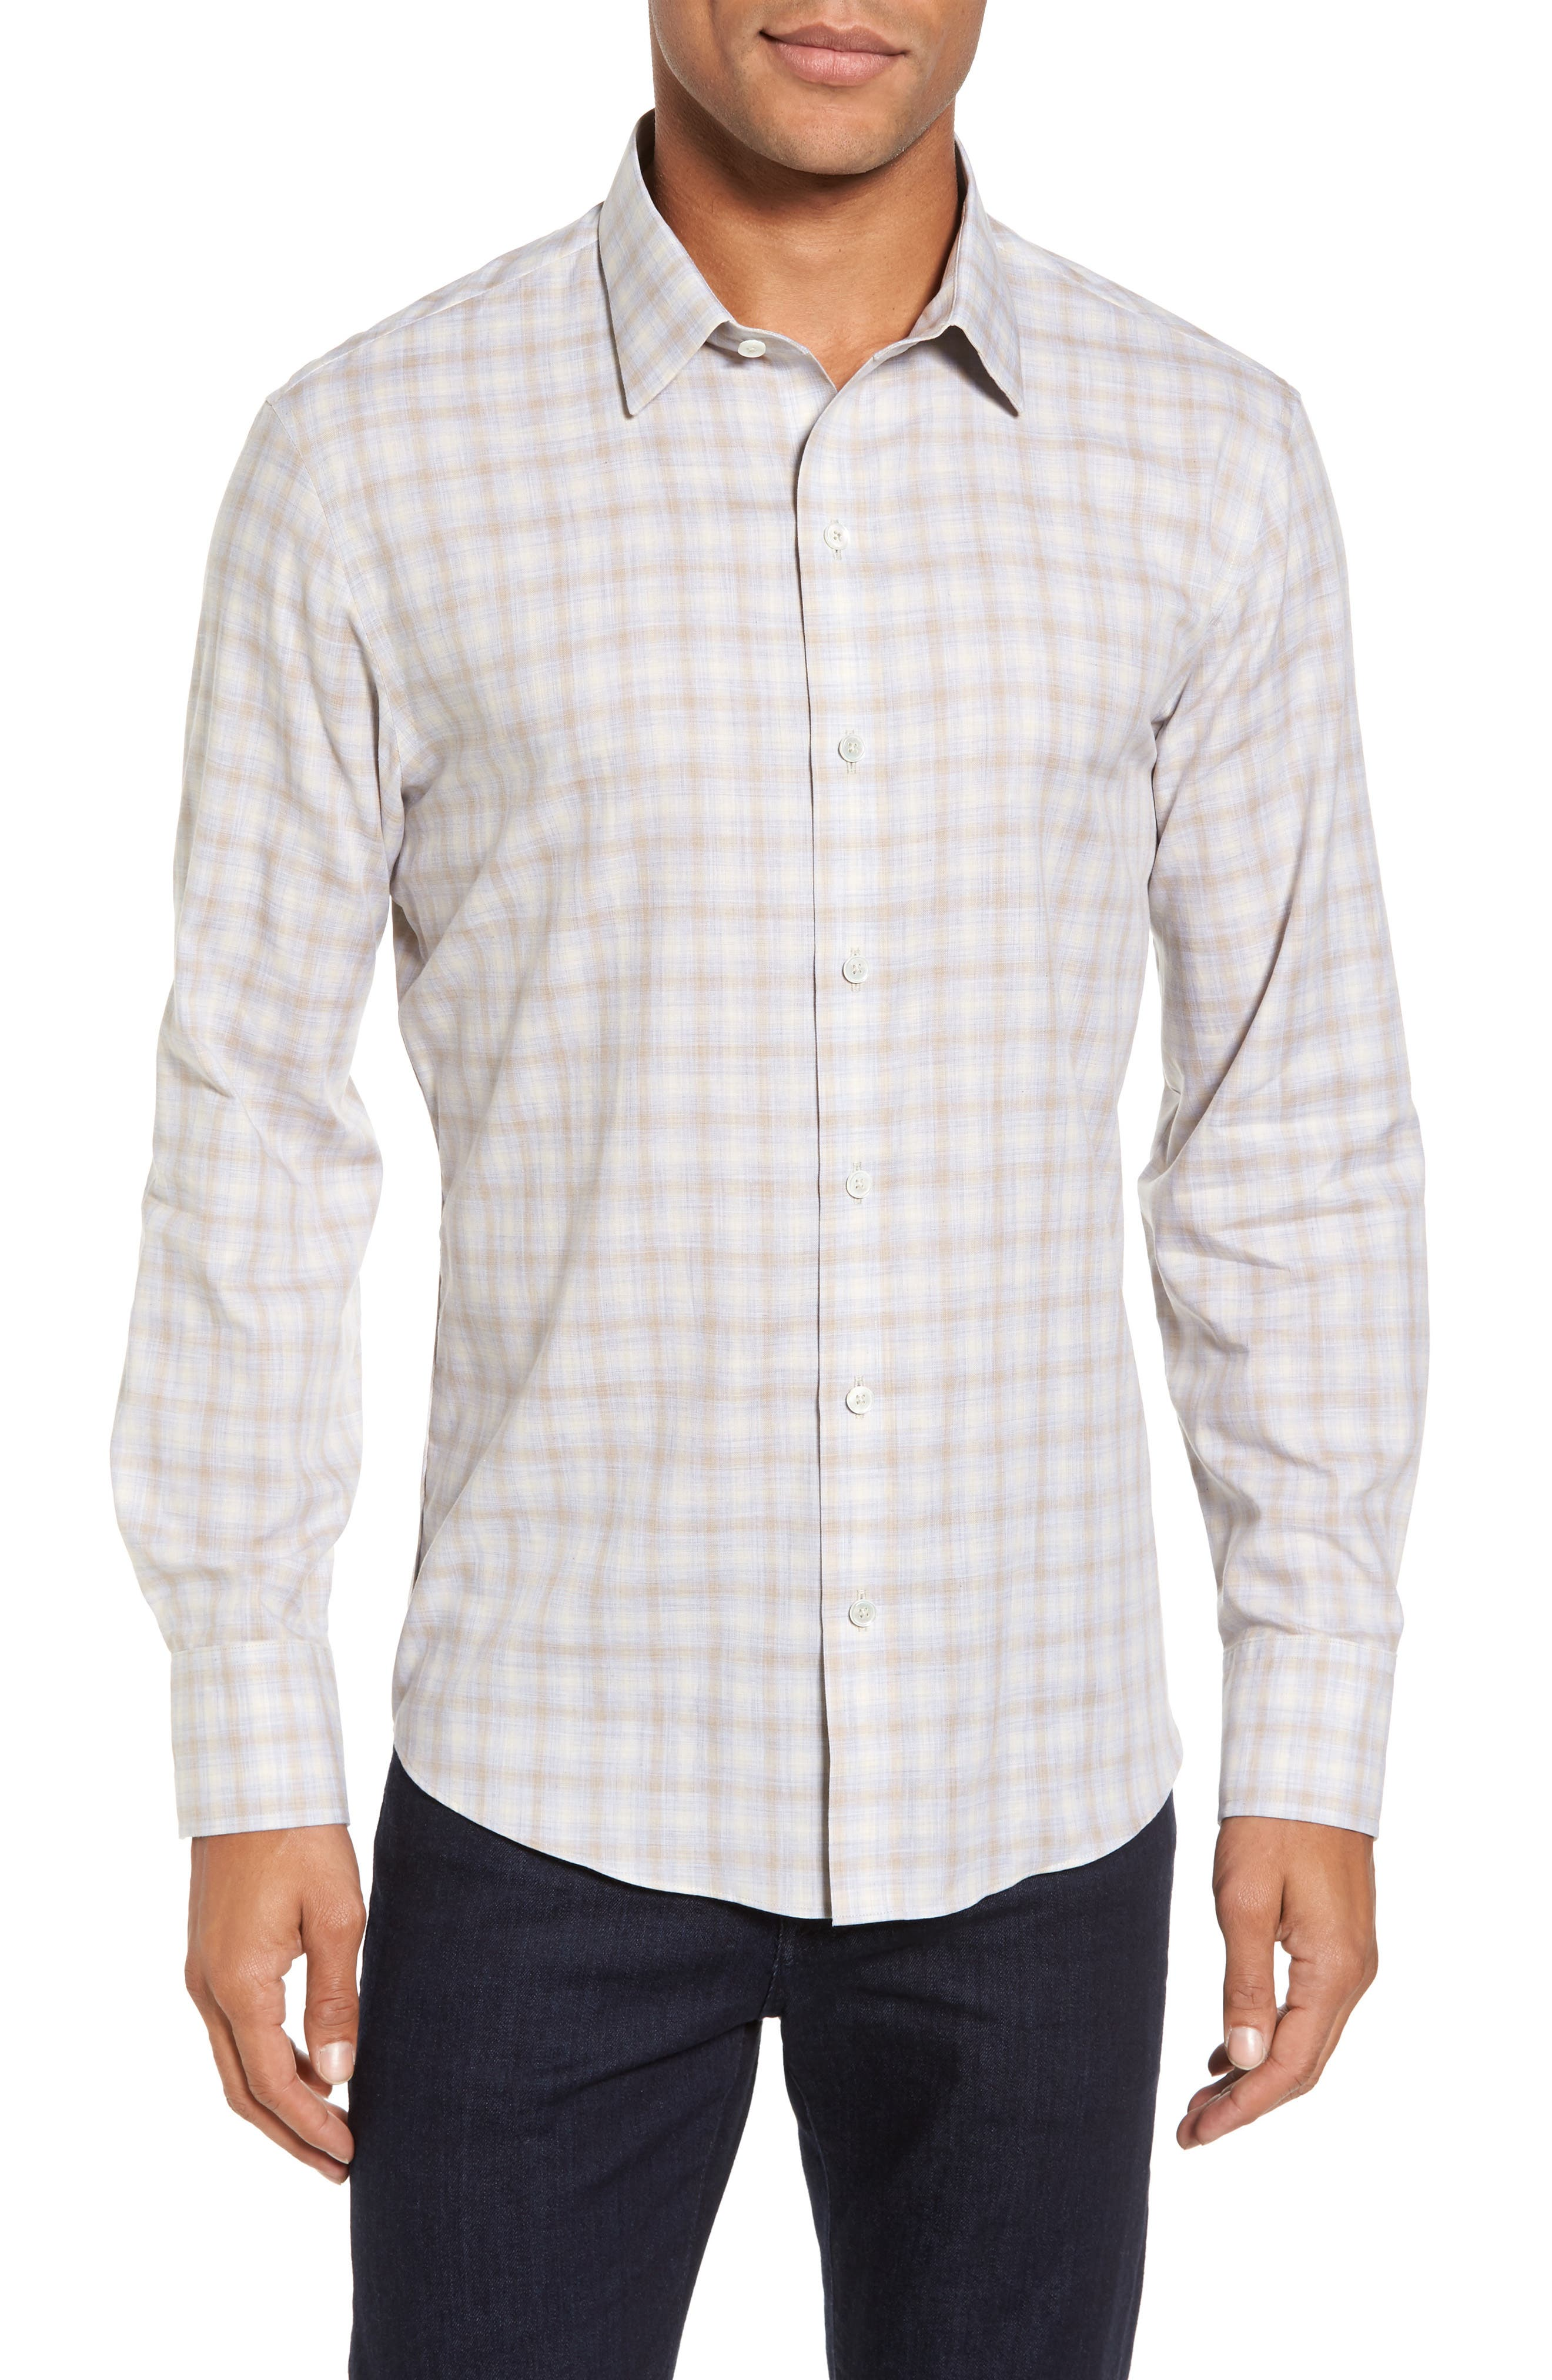 Lowles Slim Fit Plaid Sport Shirt,                             Main thumbnail 1, color,